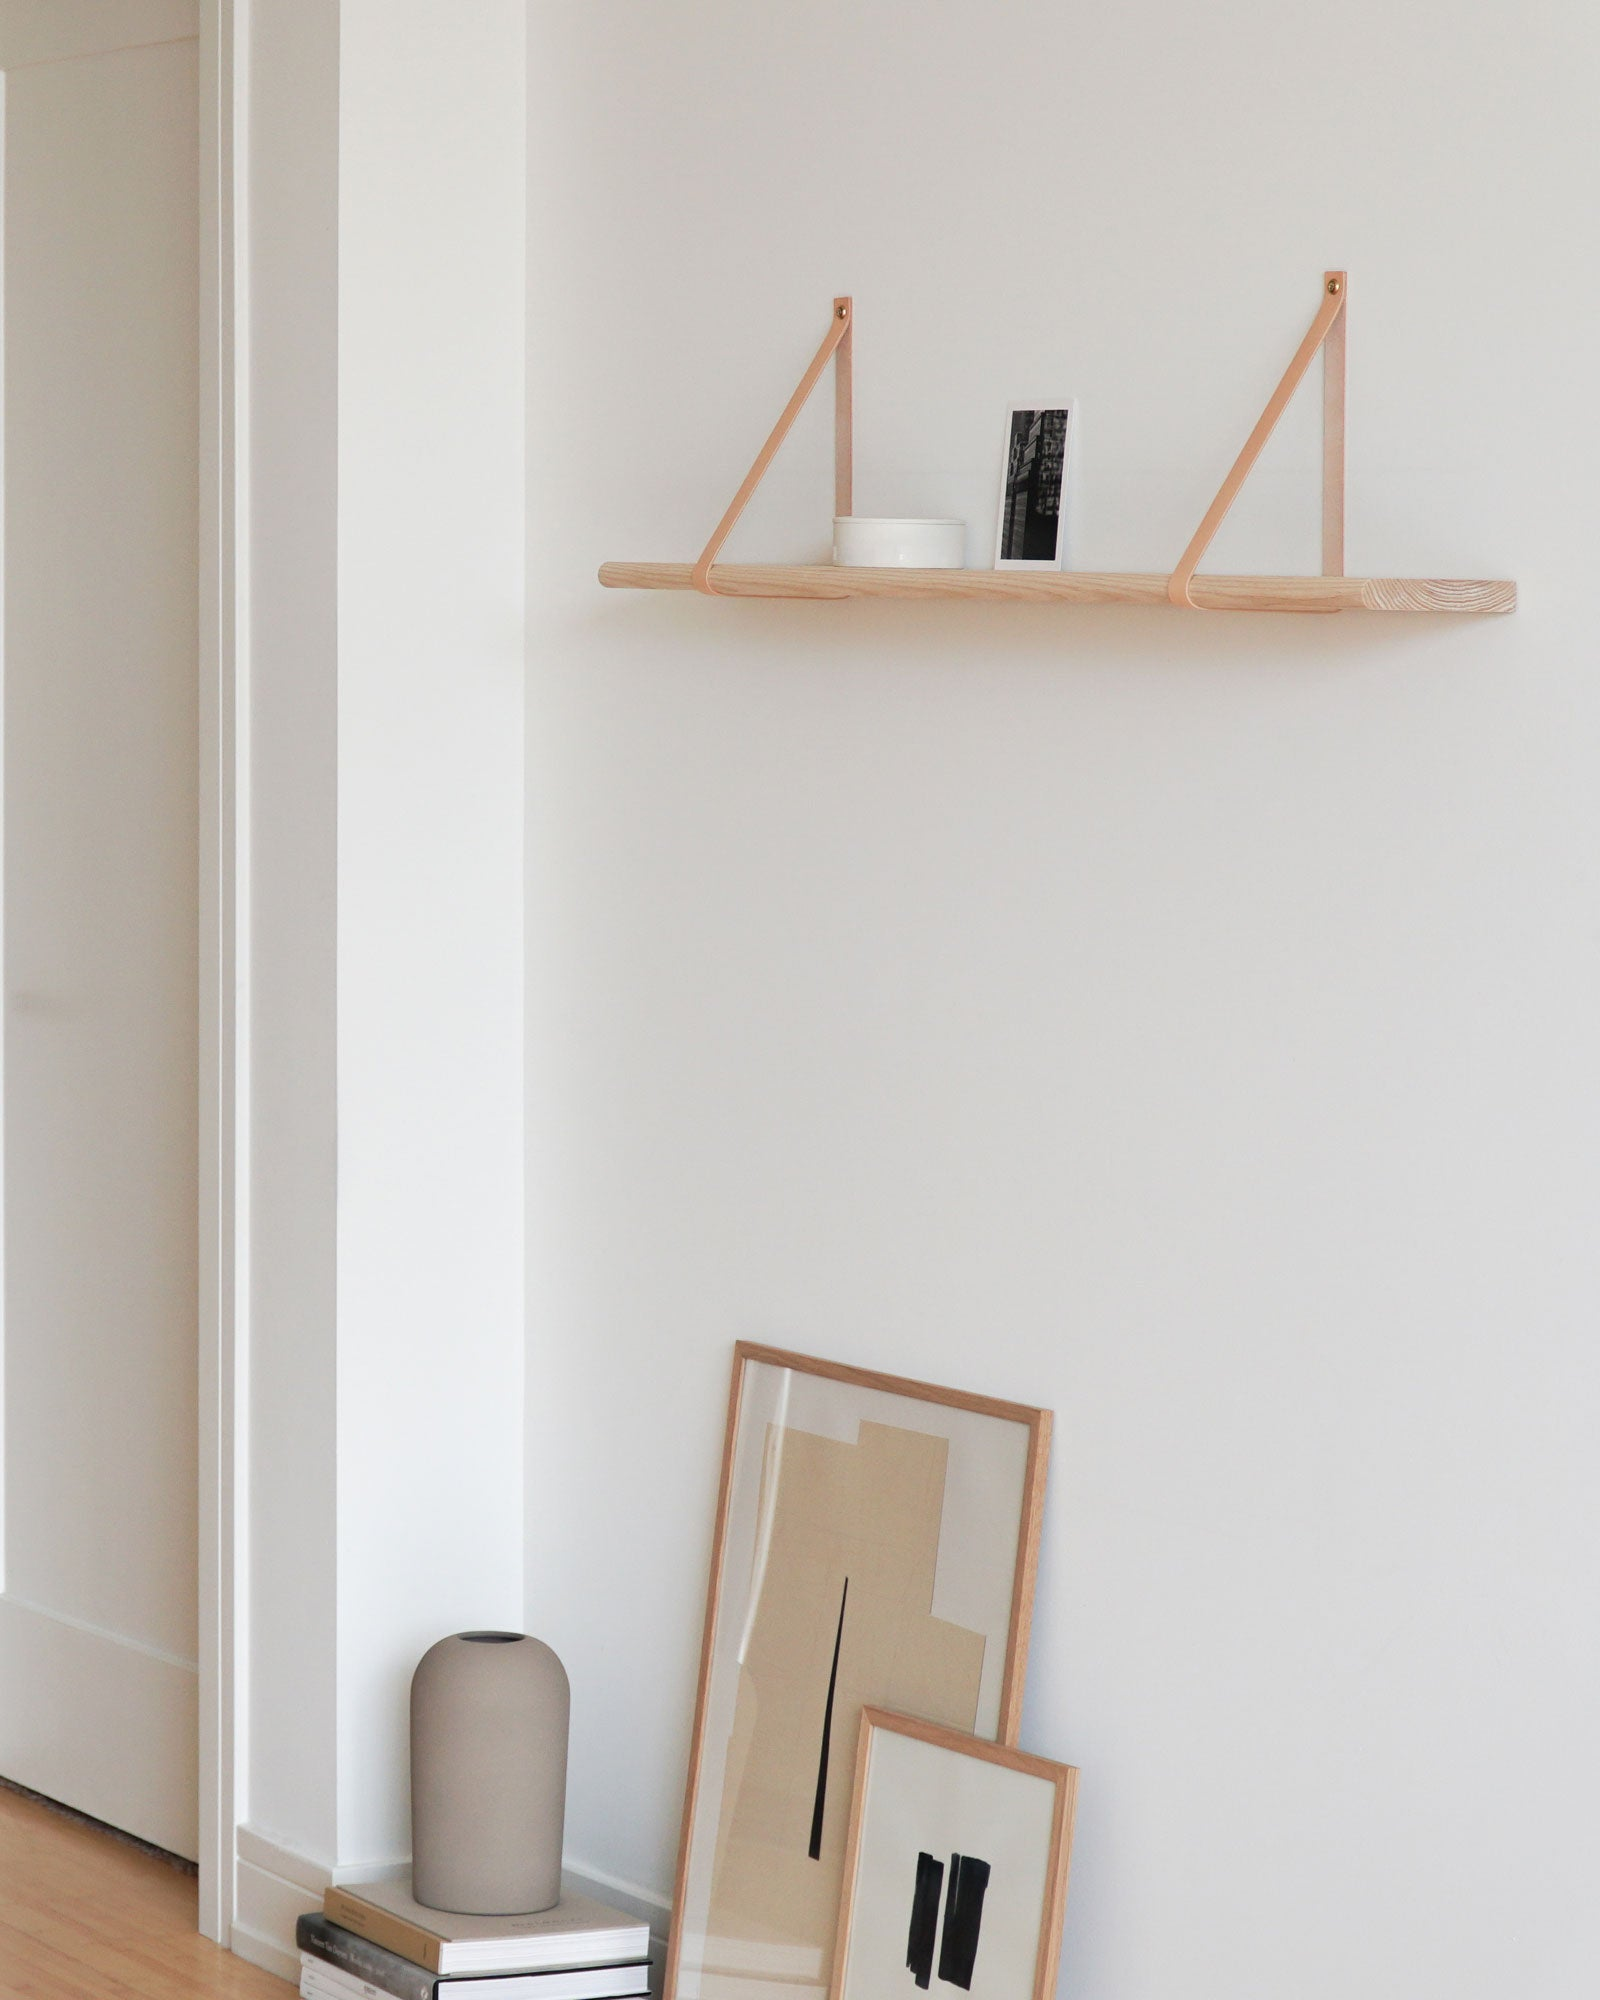 Leather Strap Shelf